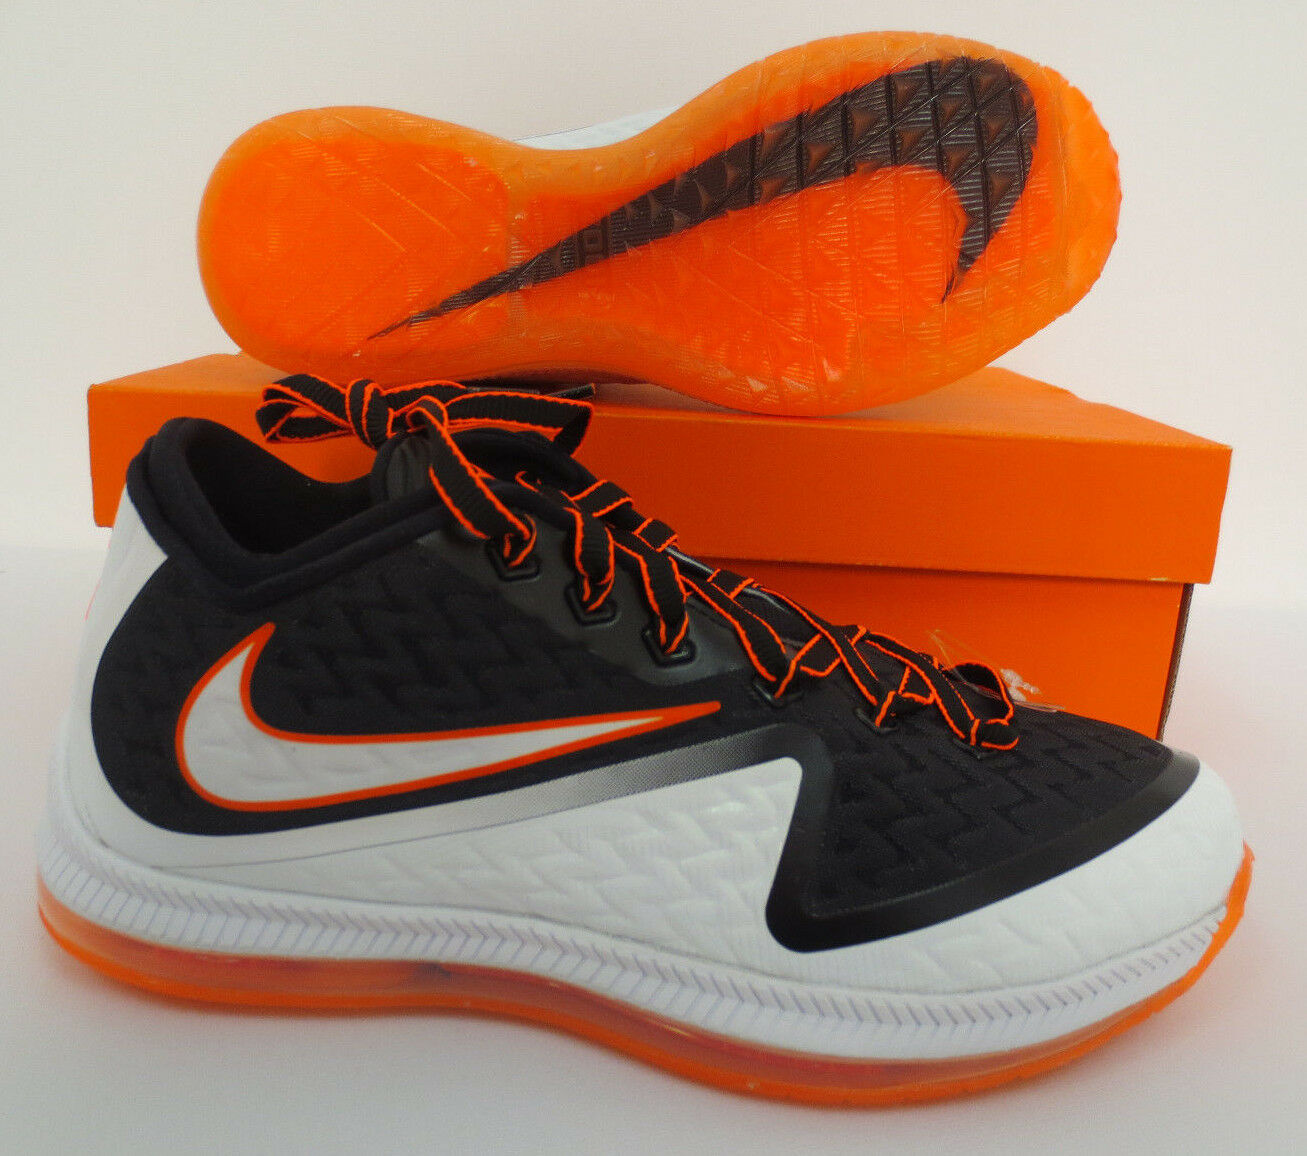 NIKE FIELD GENERAL 2 SIZE 8.5 SHOES MENS RUNNING WORKOUT 749310 108 NEW ORANGE